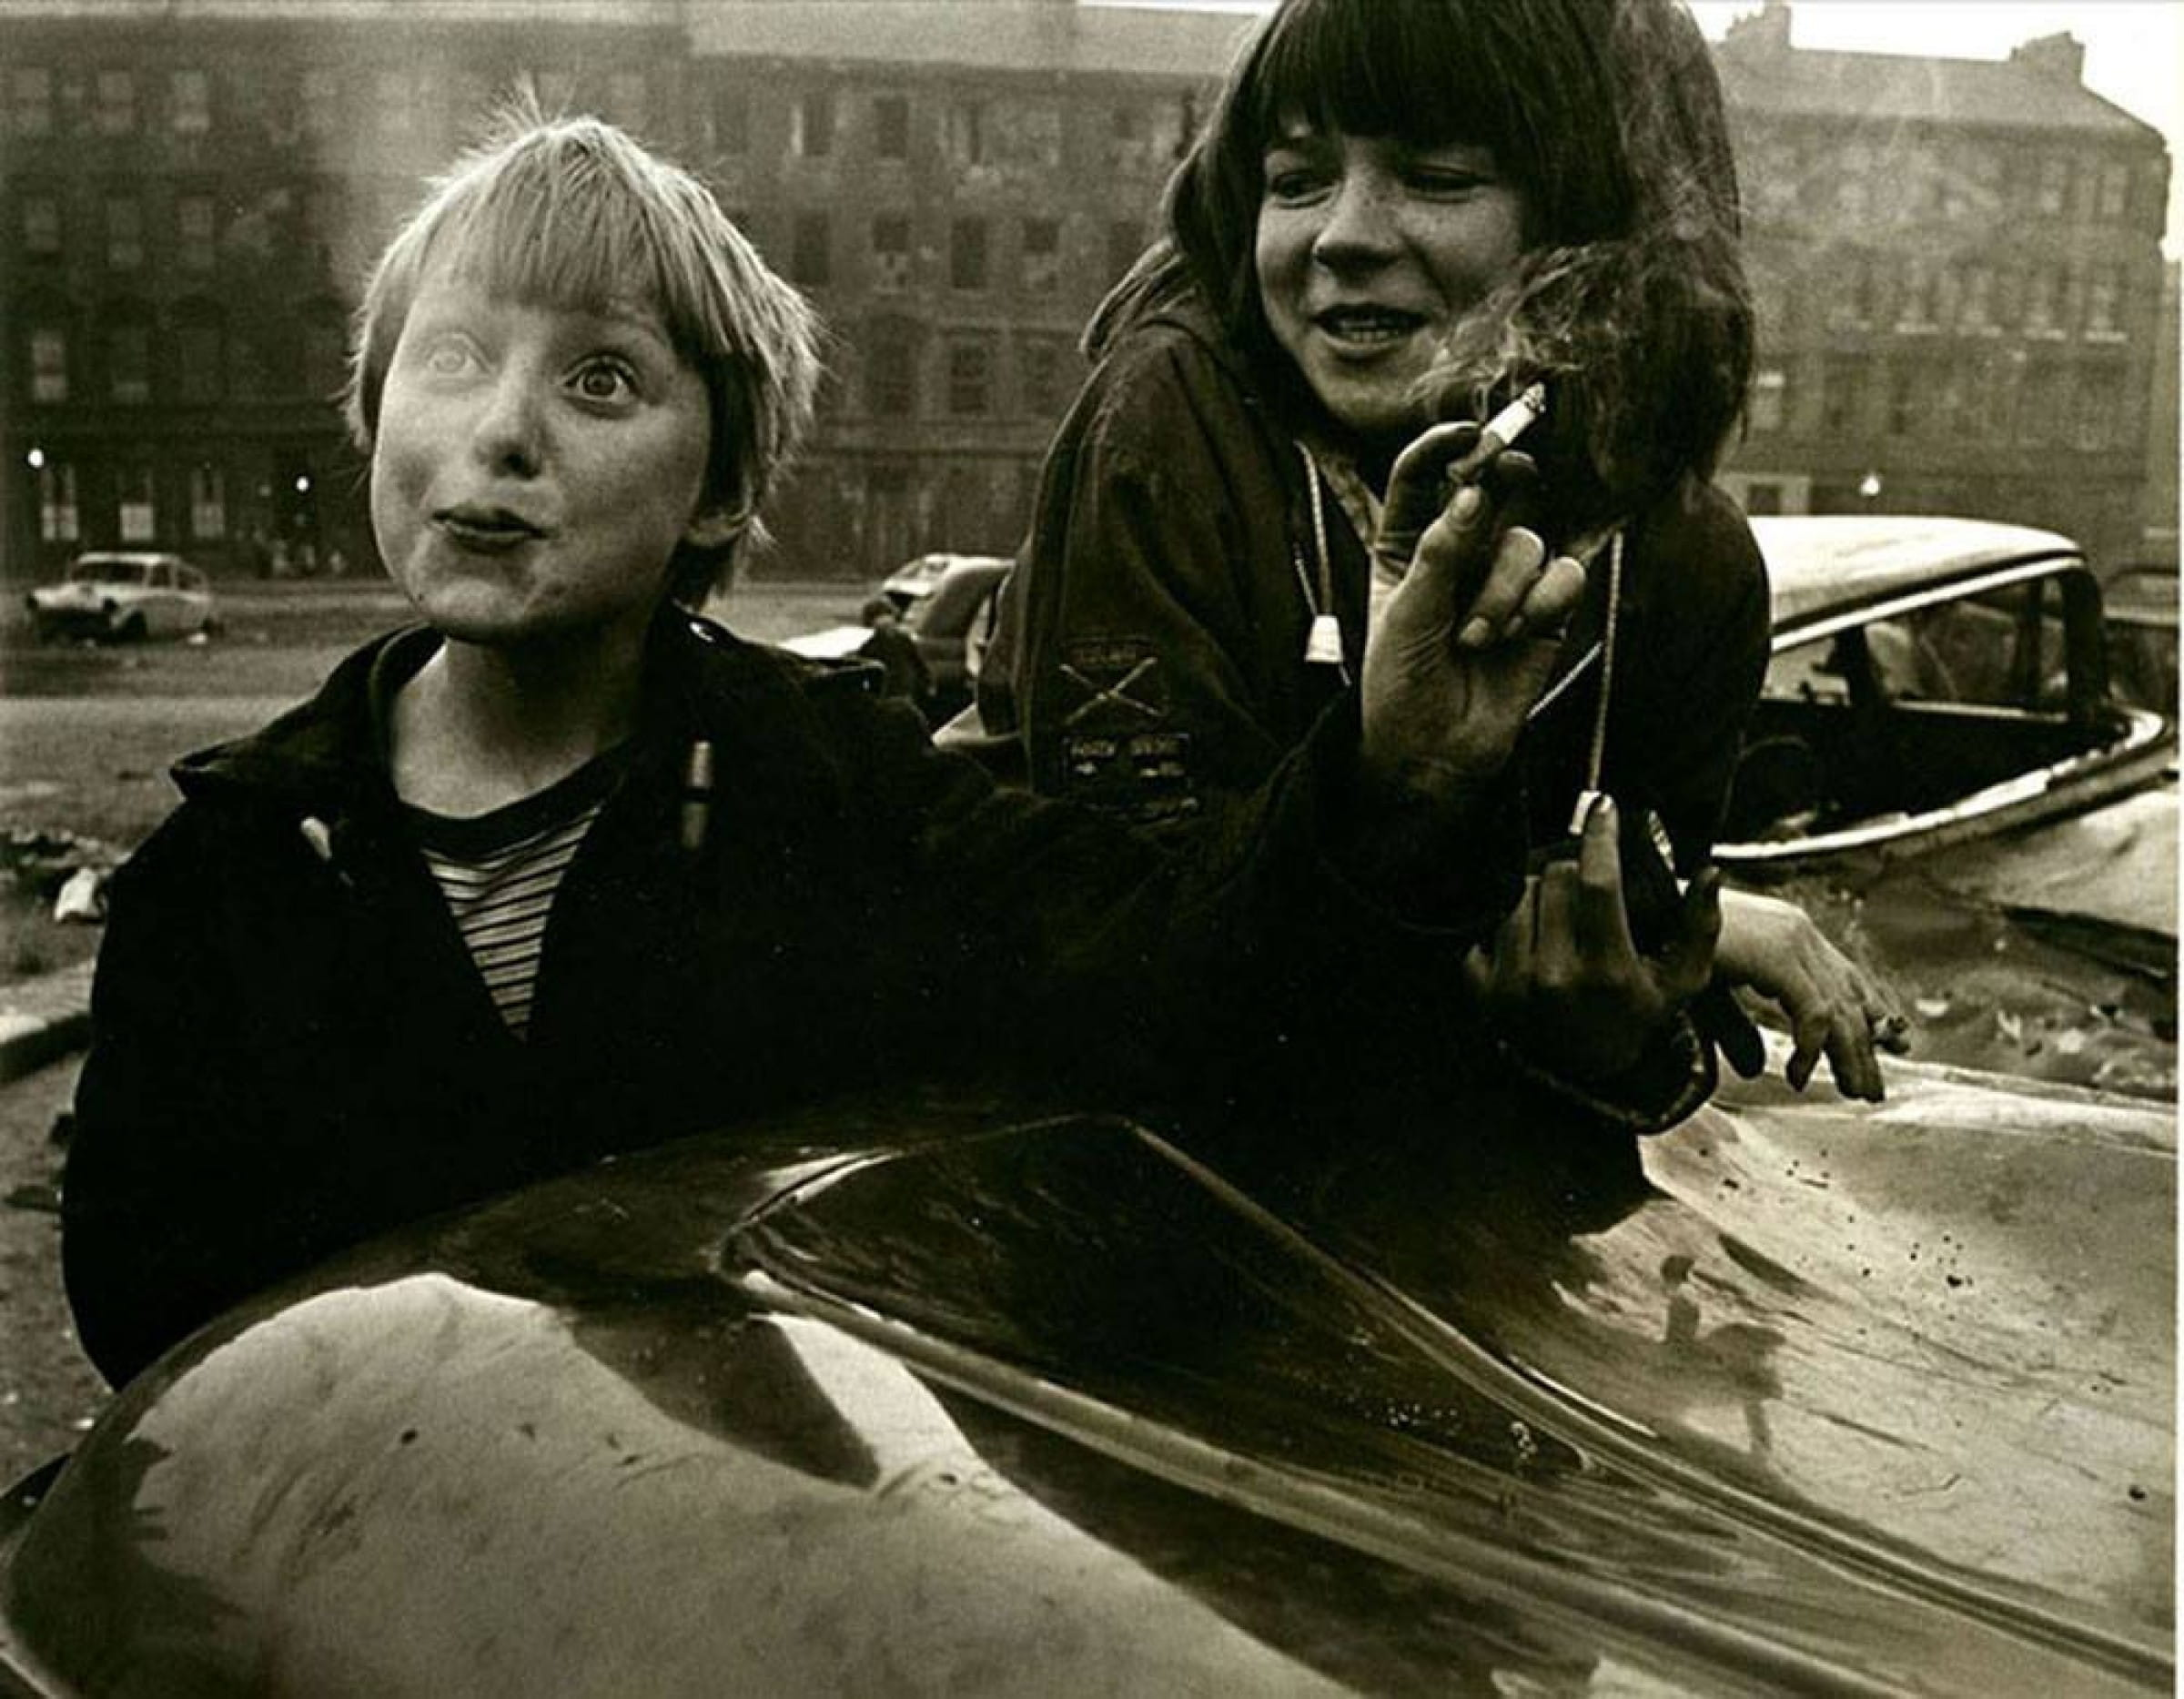 Gorbals ladies (Gorbals ladies - Violet Fitsimmons and Rosemary Mowatt - 1966, by https://photophile.wordpress.com/category/gorbals/)